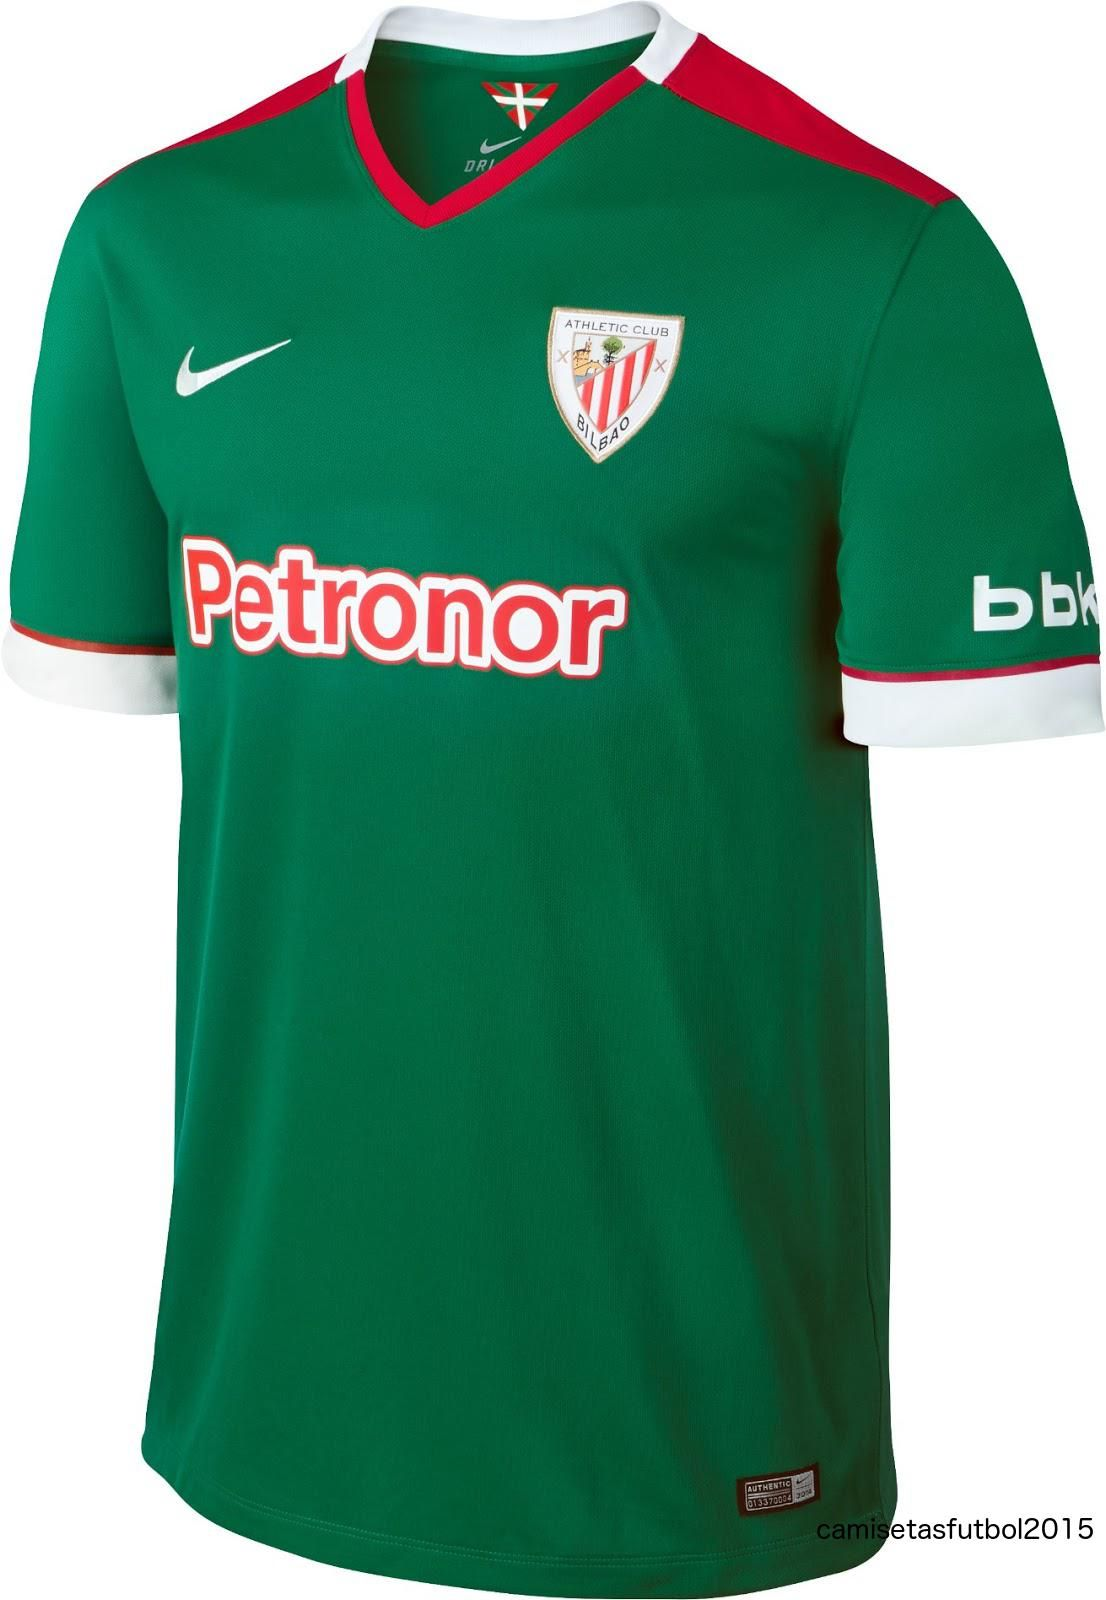 5bb1e9bba6640 The Athletic Bilbao Kids Away Jersey which is available in boys and youths  sizes. A